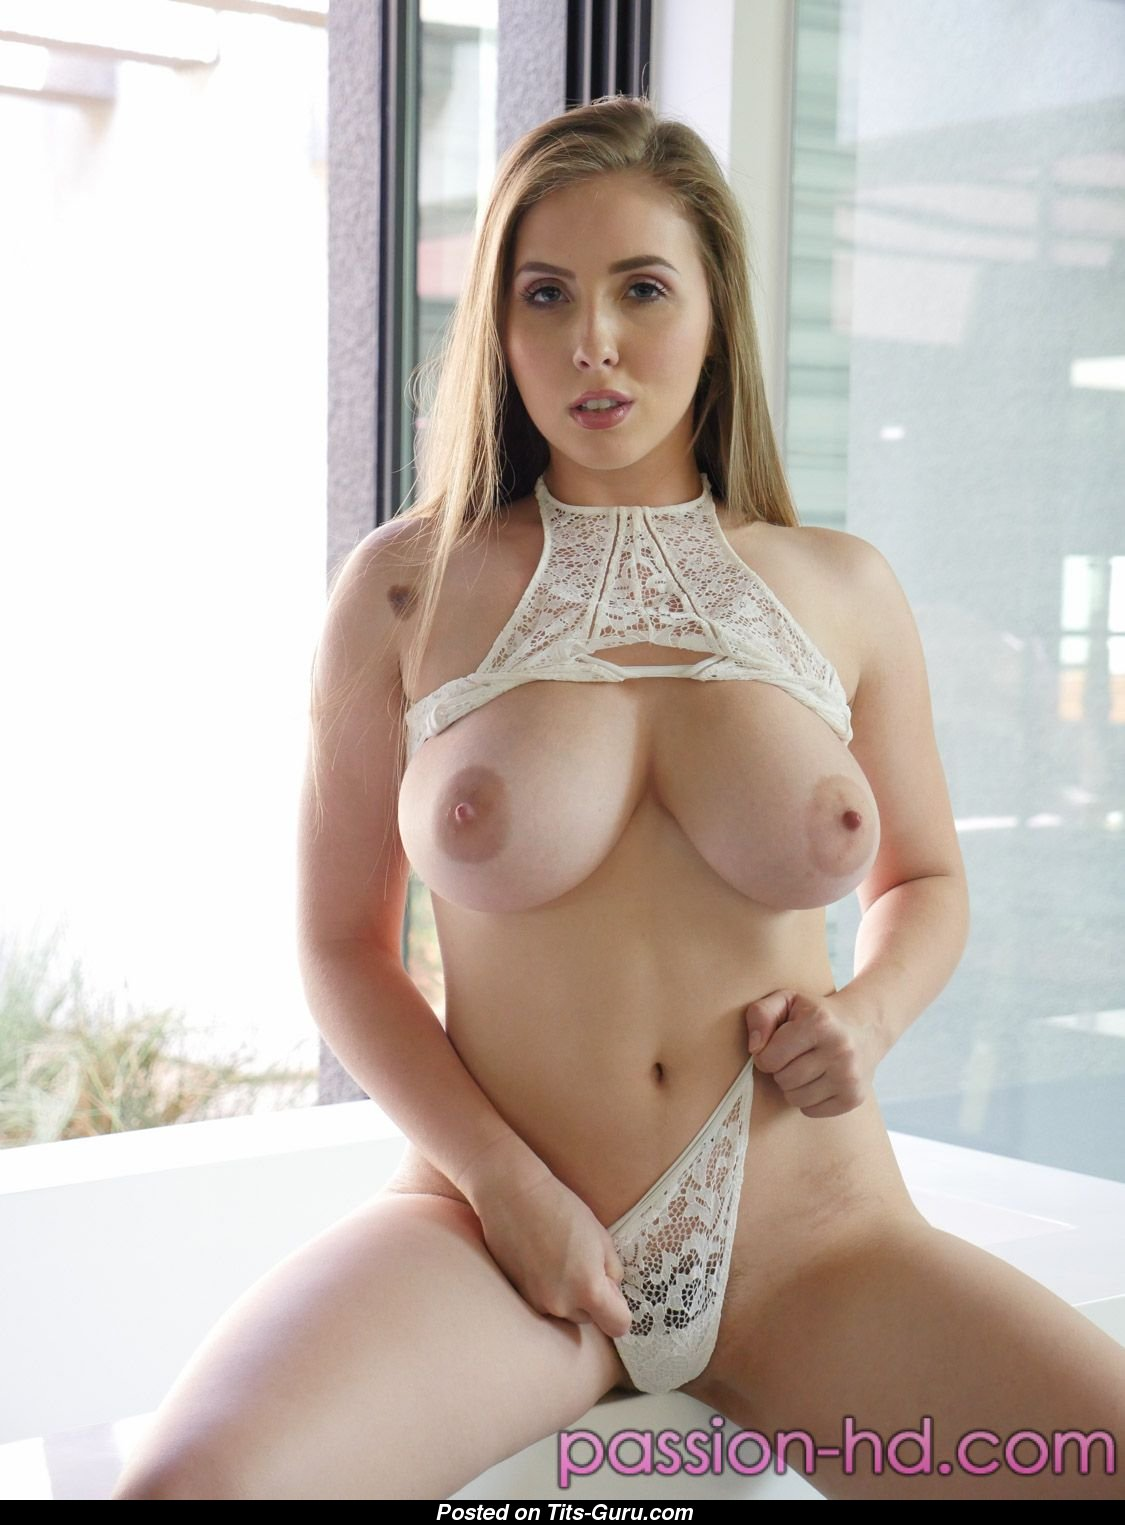 Lena paul nude pictures rating